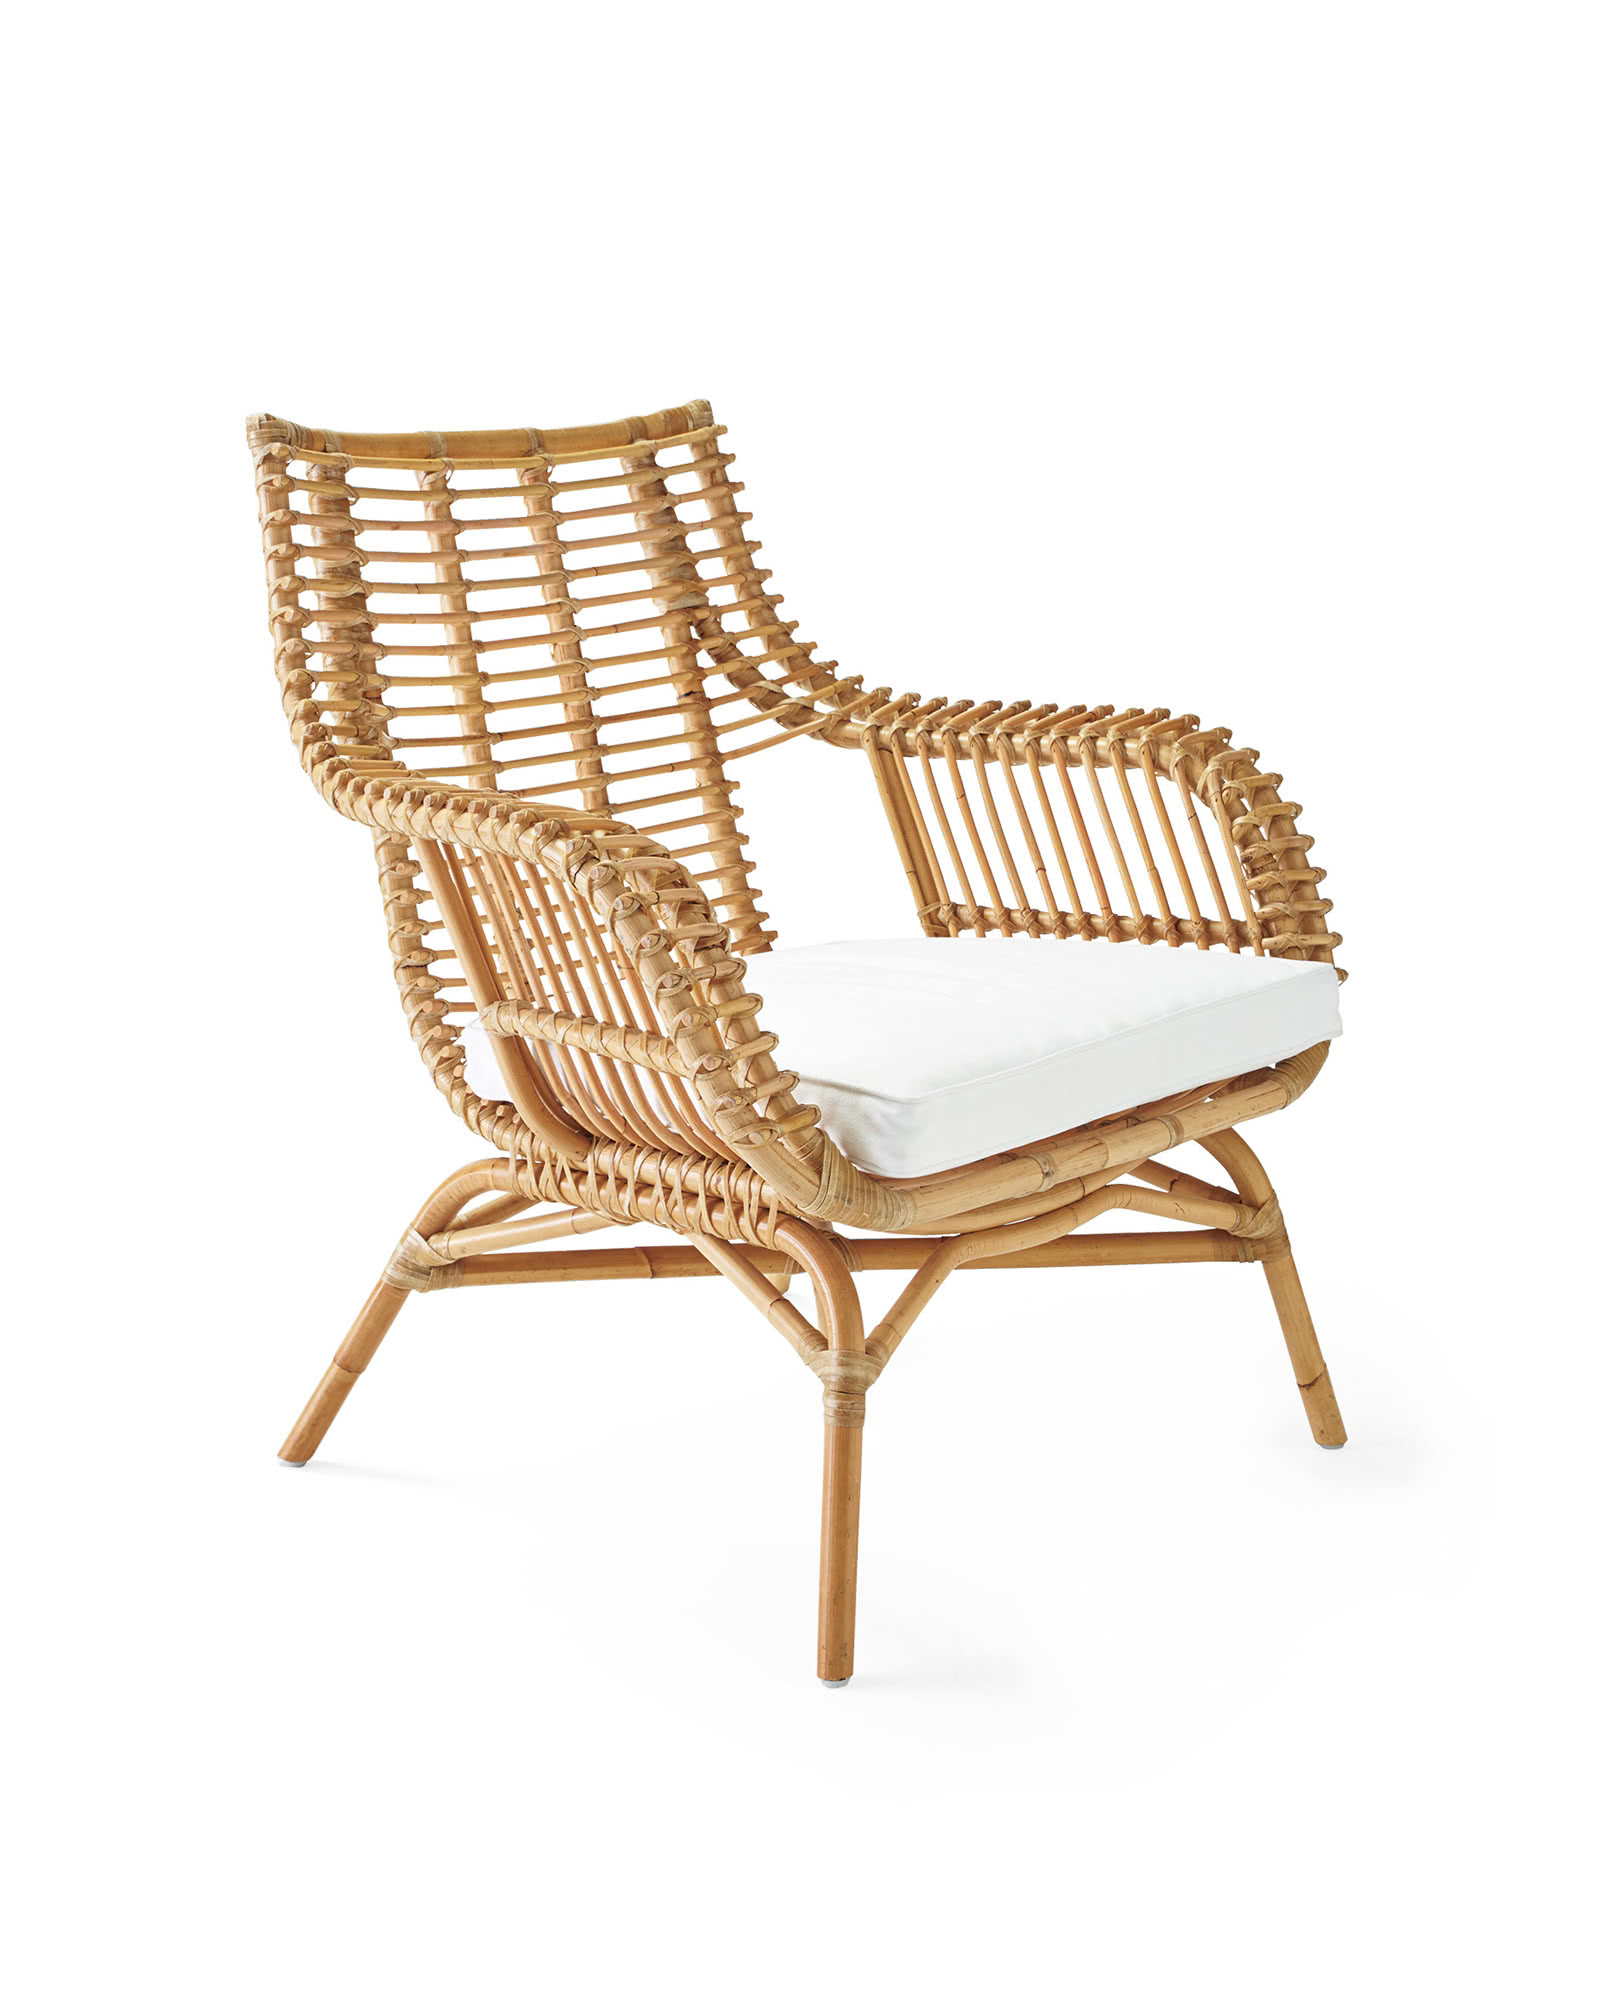 Rattan Chairs Venice Rattan Chair Cushion